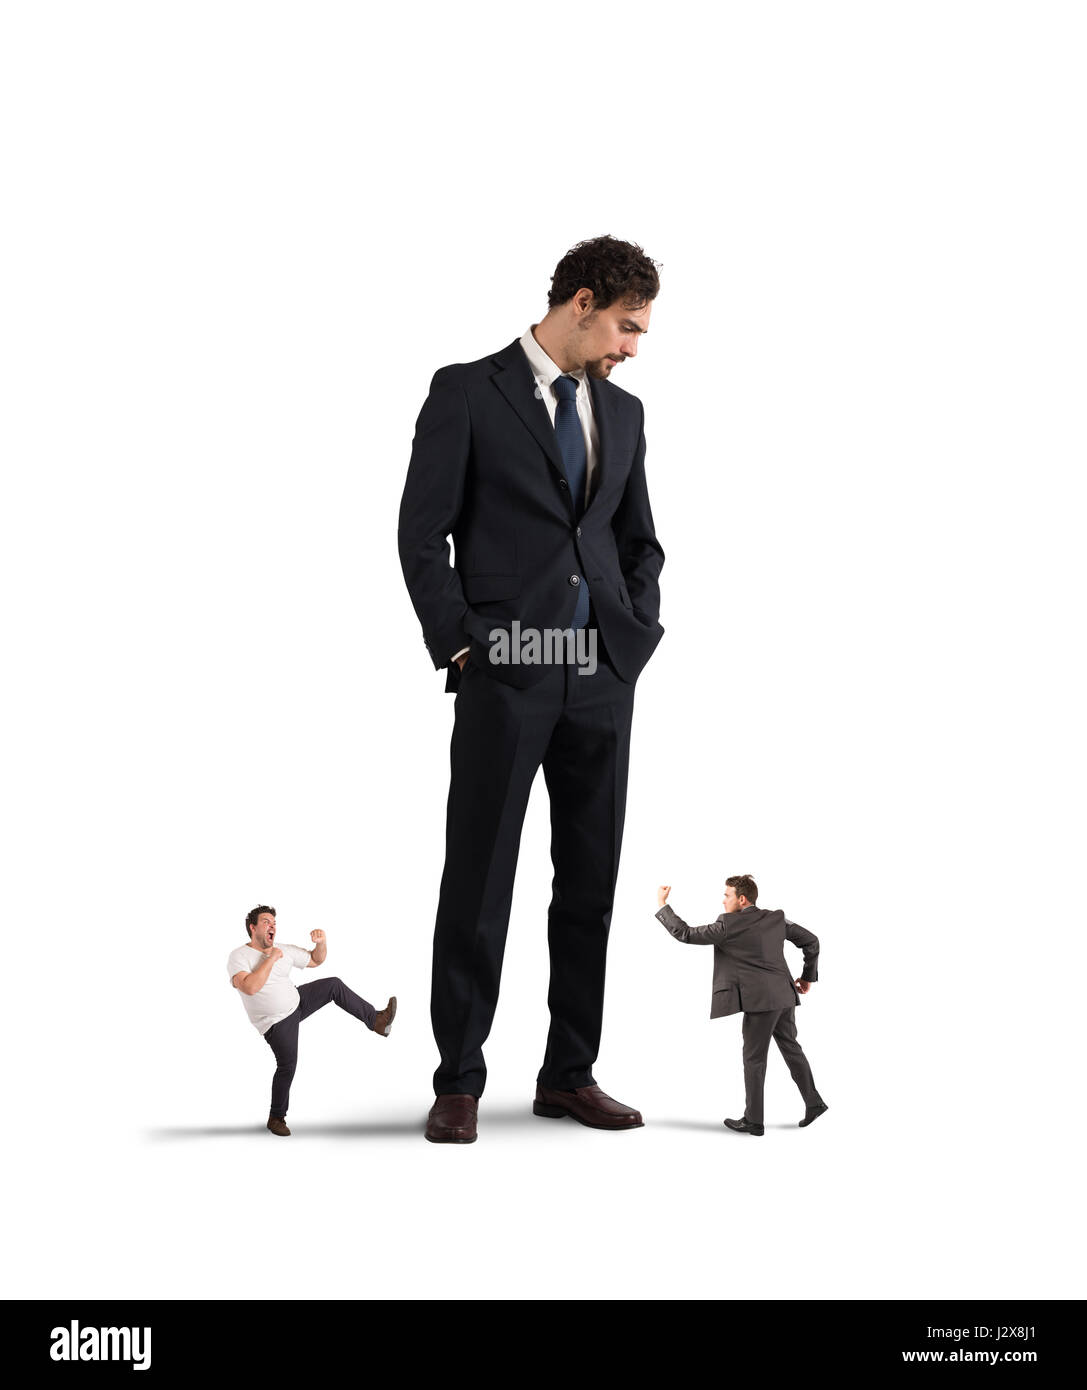 Employees who want to rebel at their boss - Stock Image